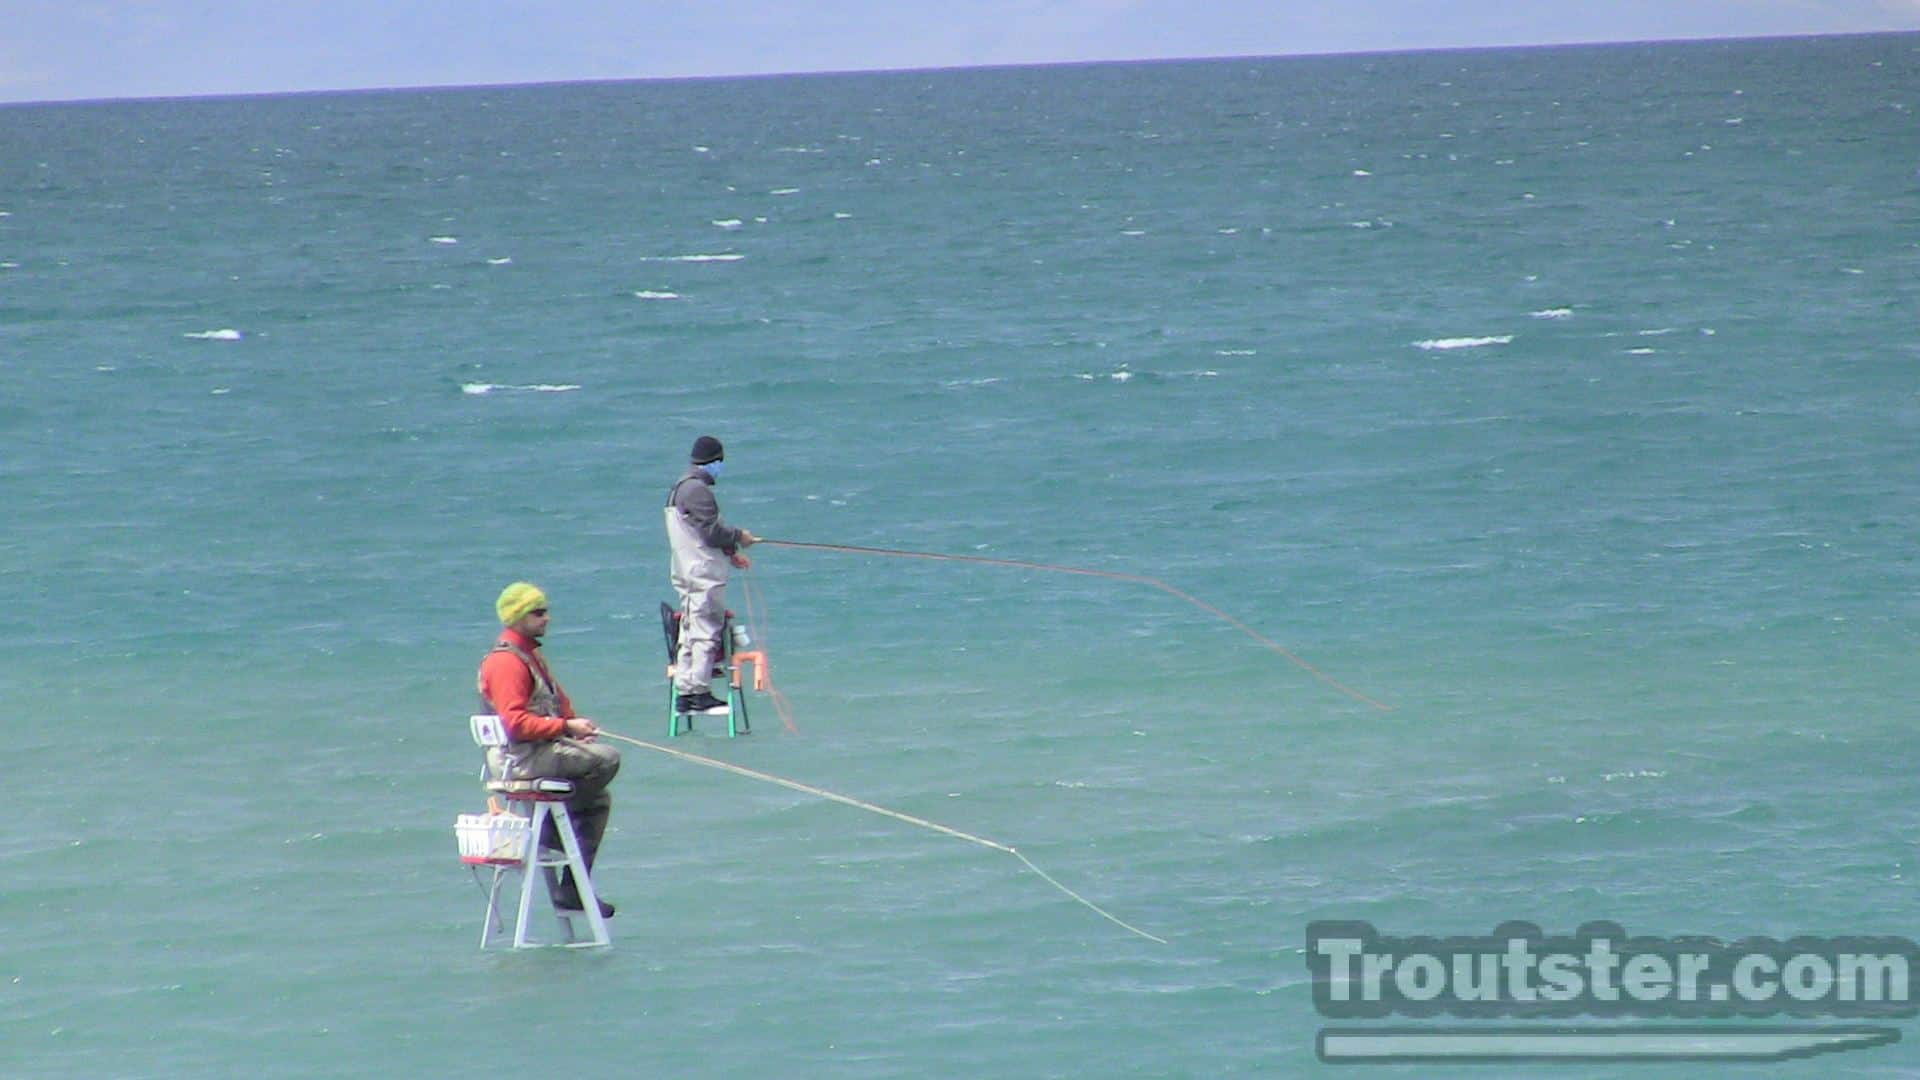 Fly fishing in Pyramid lake using ladders